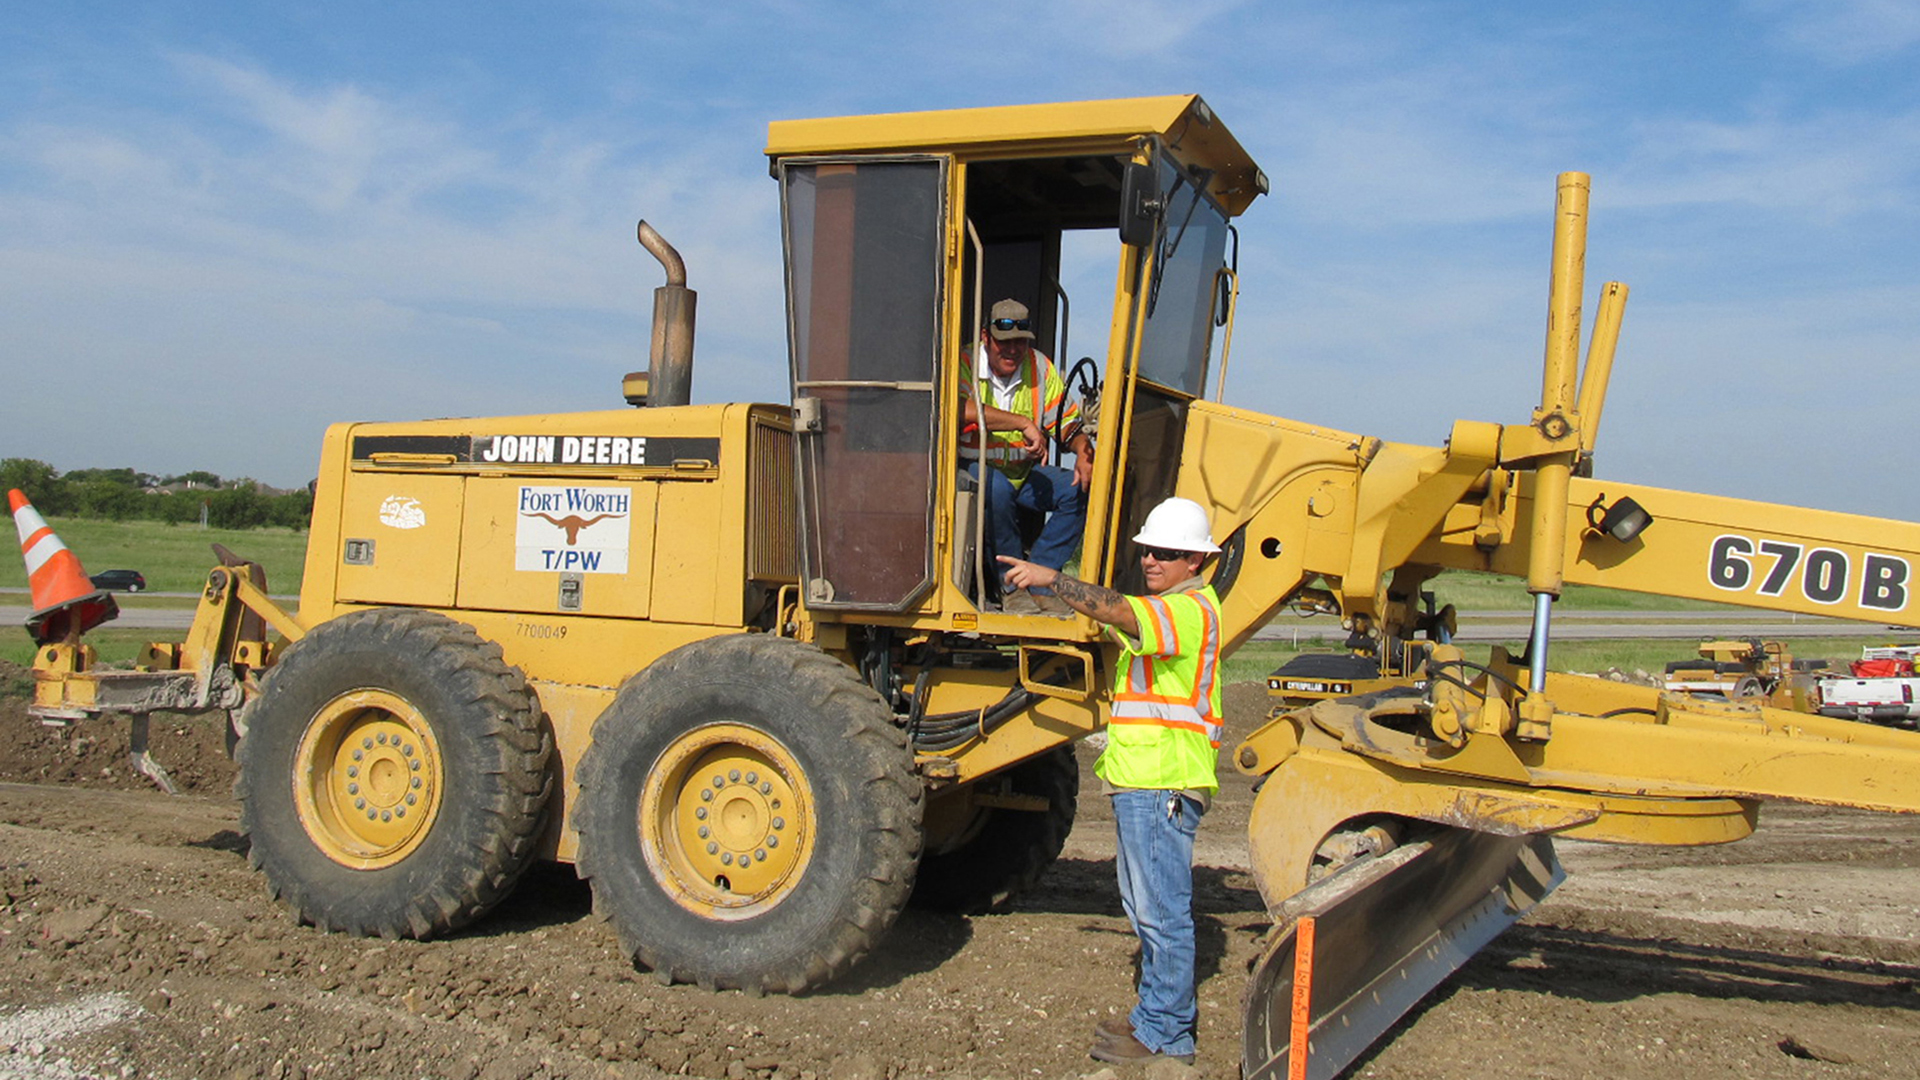 Construction Equipment and City employee